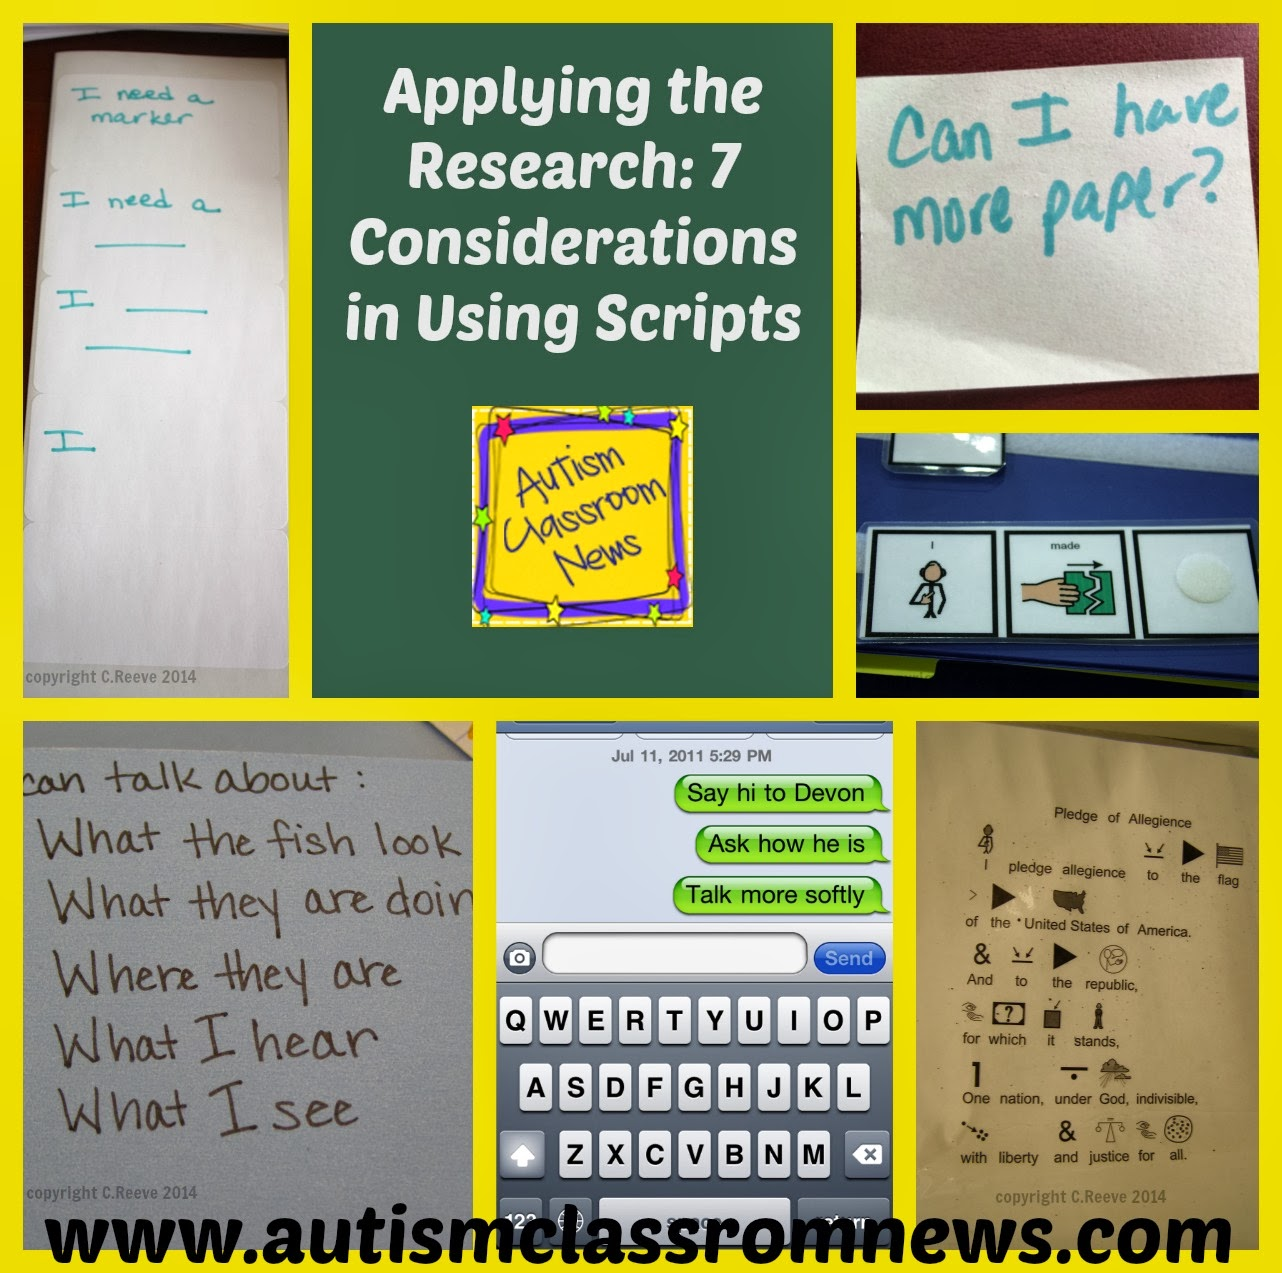 Help with thesis statement informative speech on autism